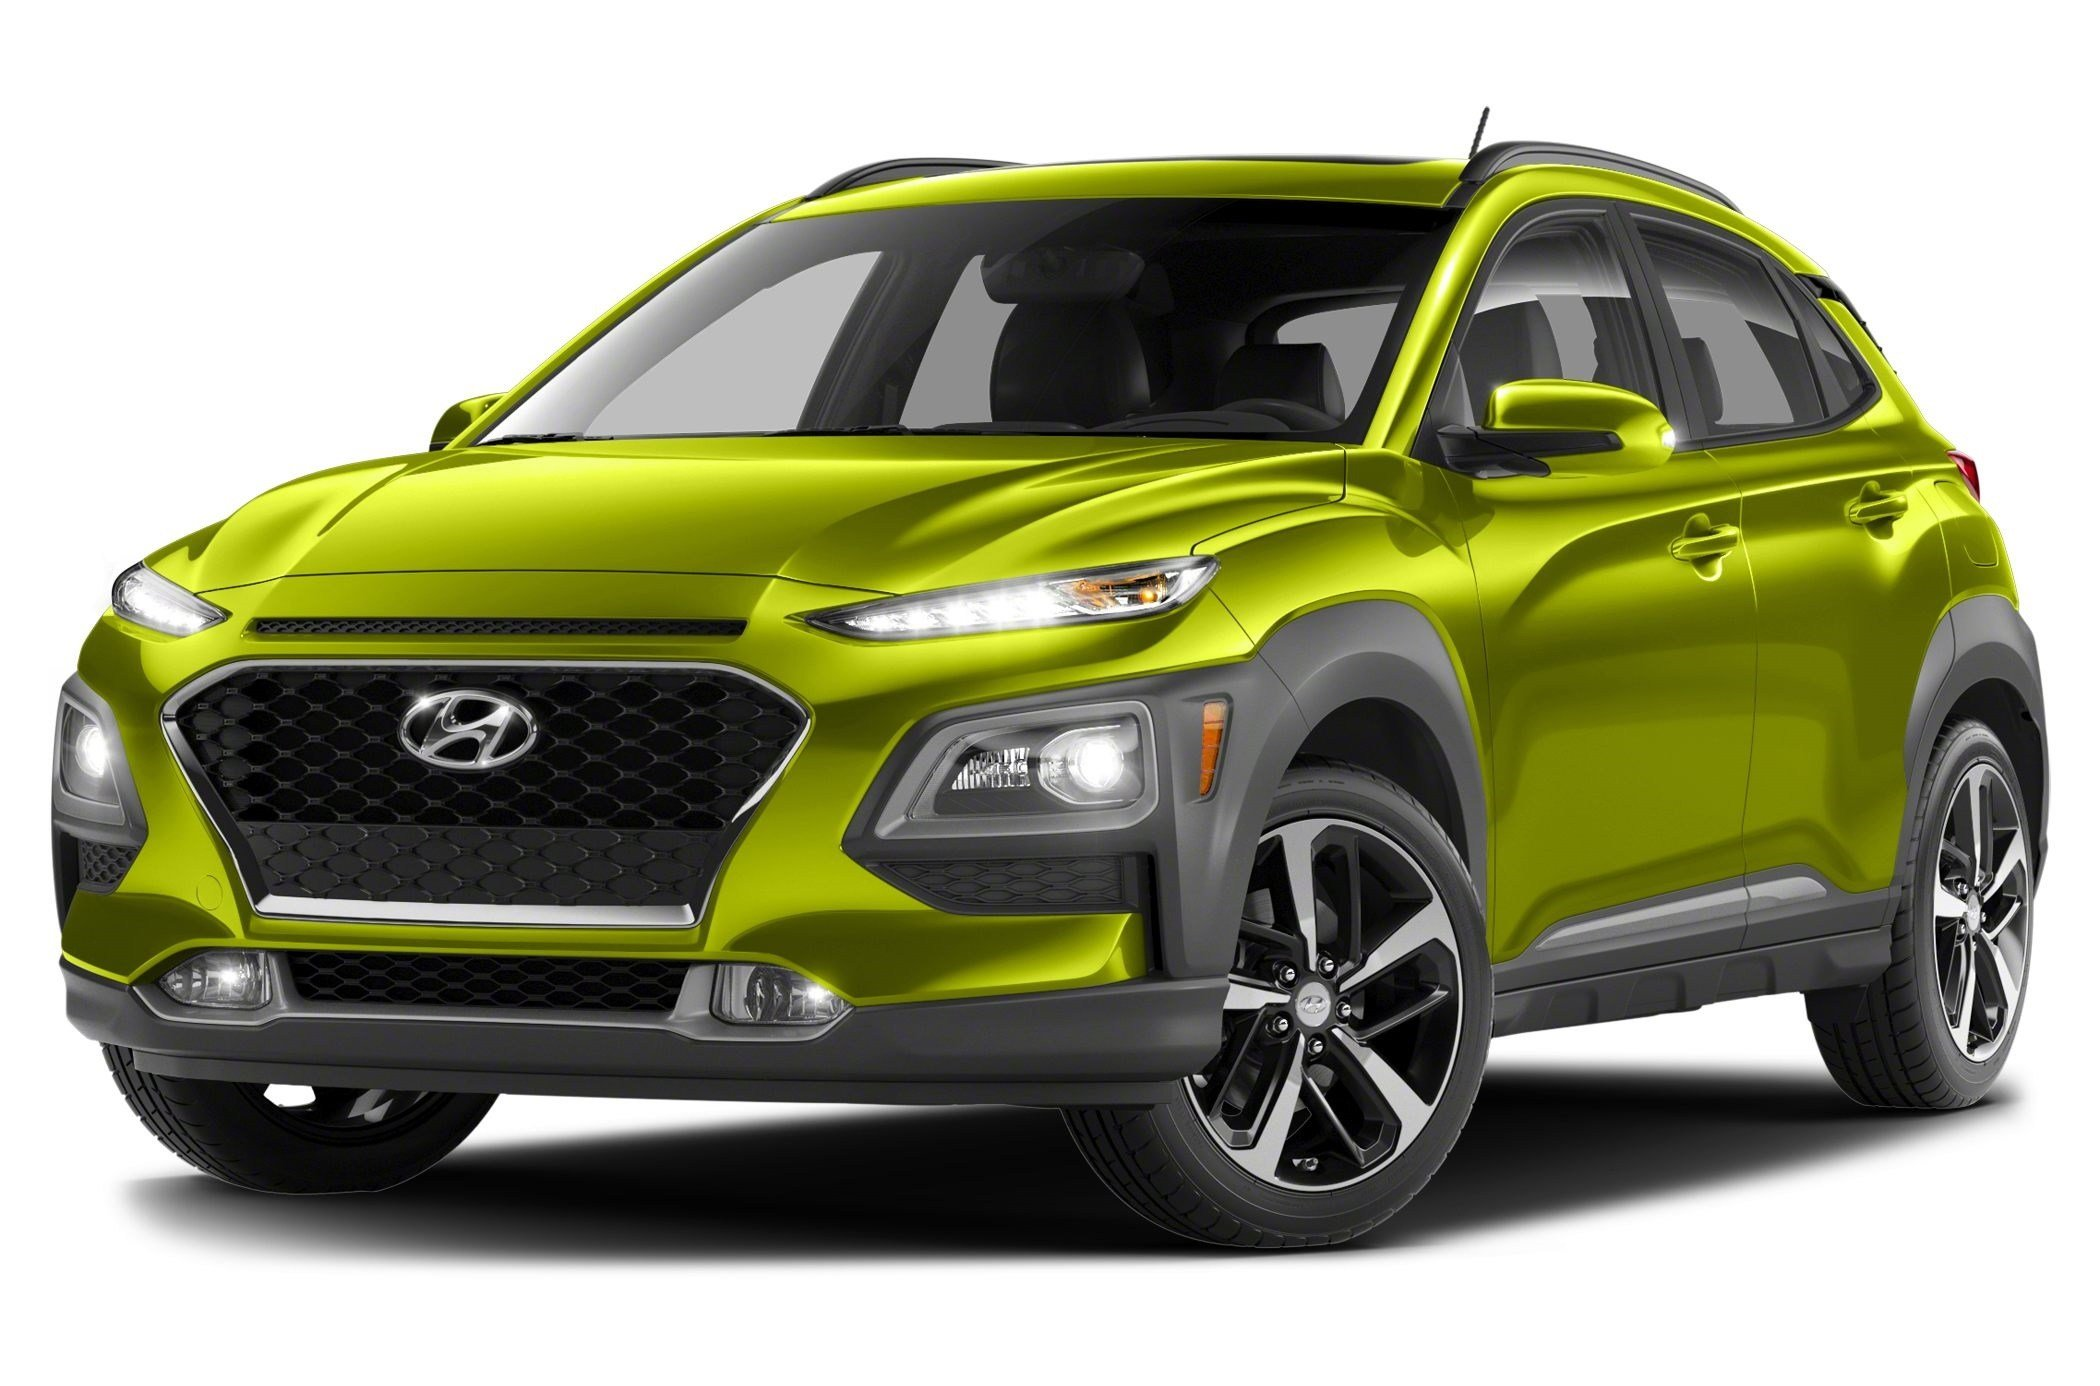 New Hyundai Kona 2019 2 0L Top In Saudi Arabia New Car Prices On This Month